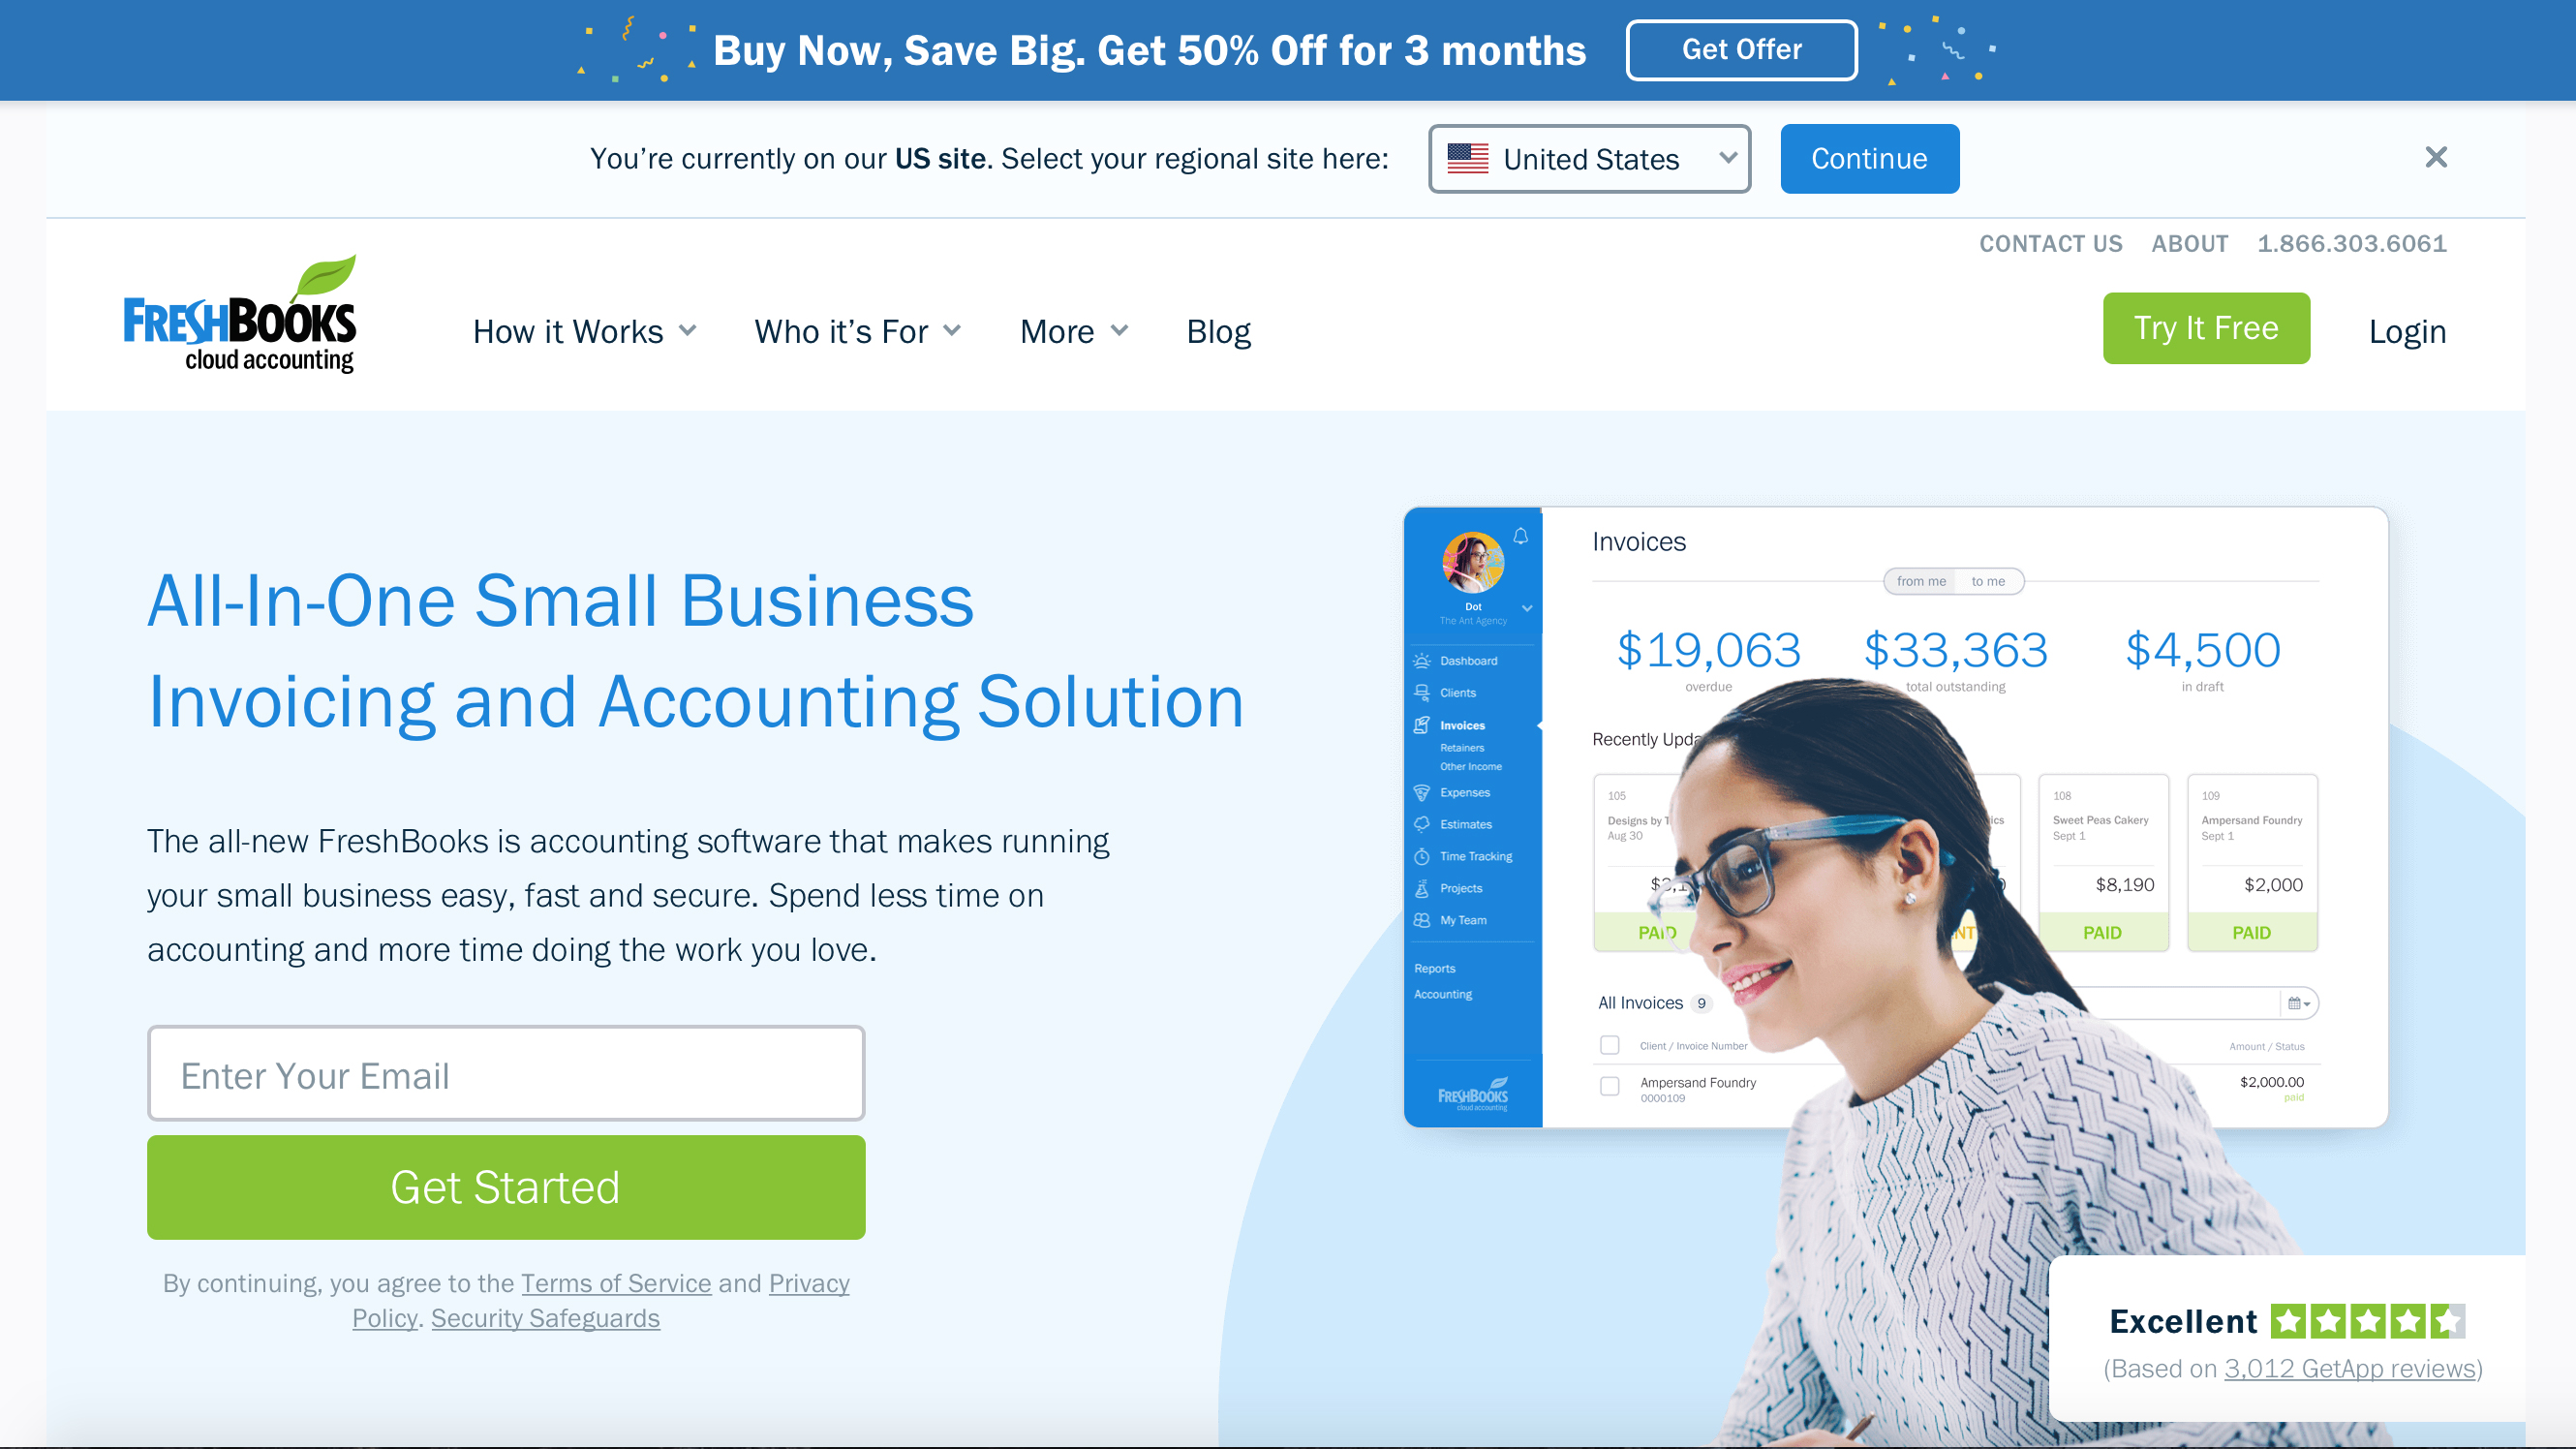 Online Coupon Printable 2020 Freshbooks